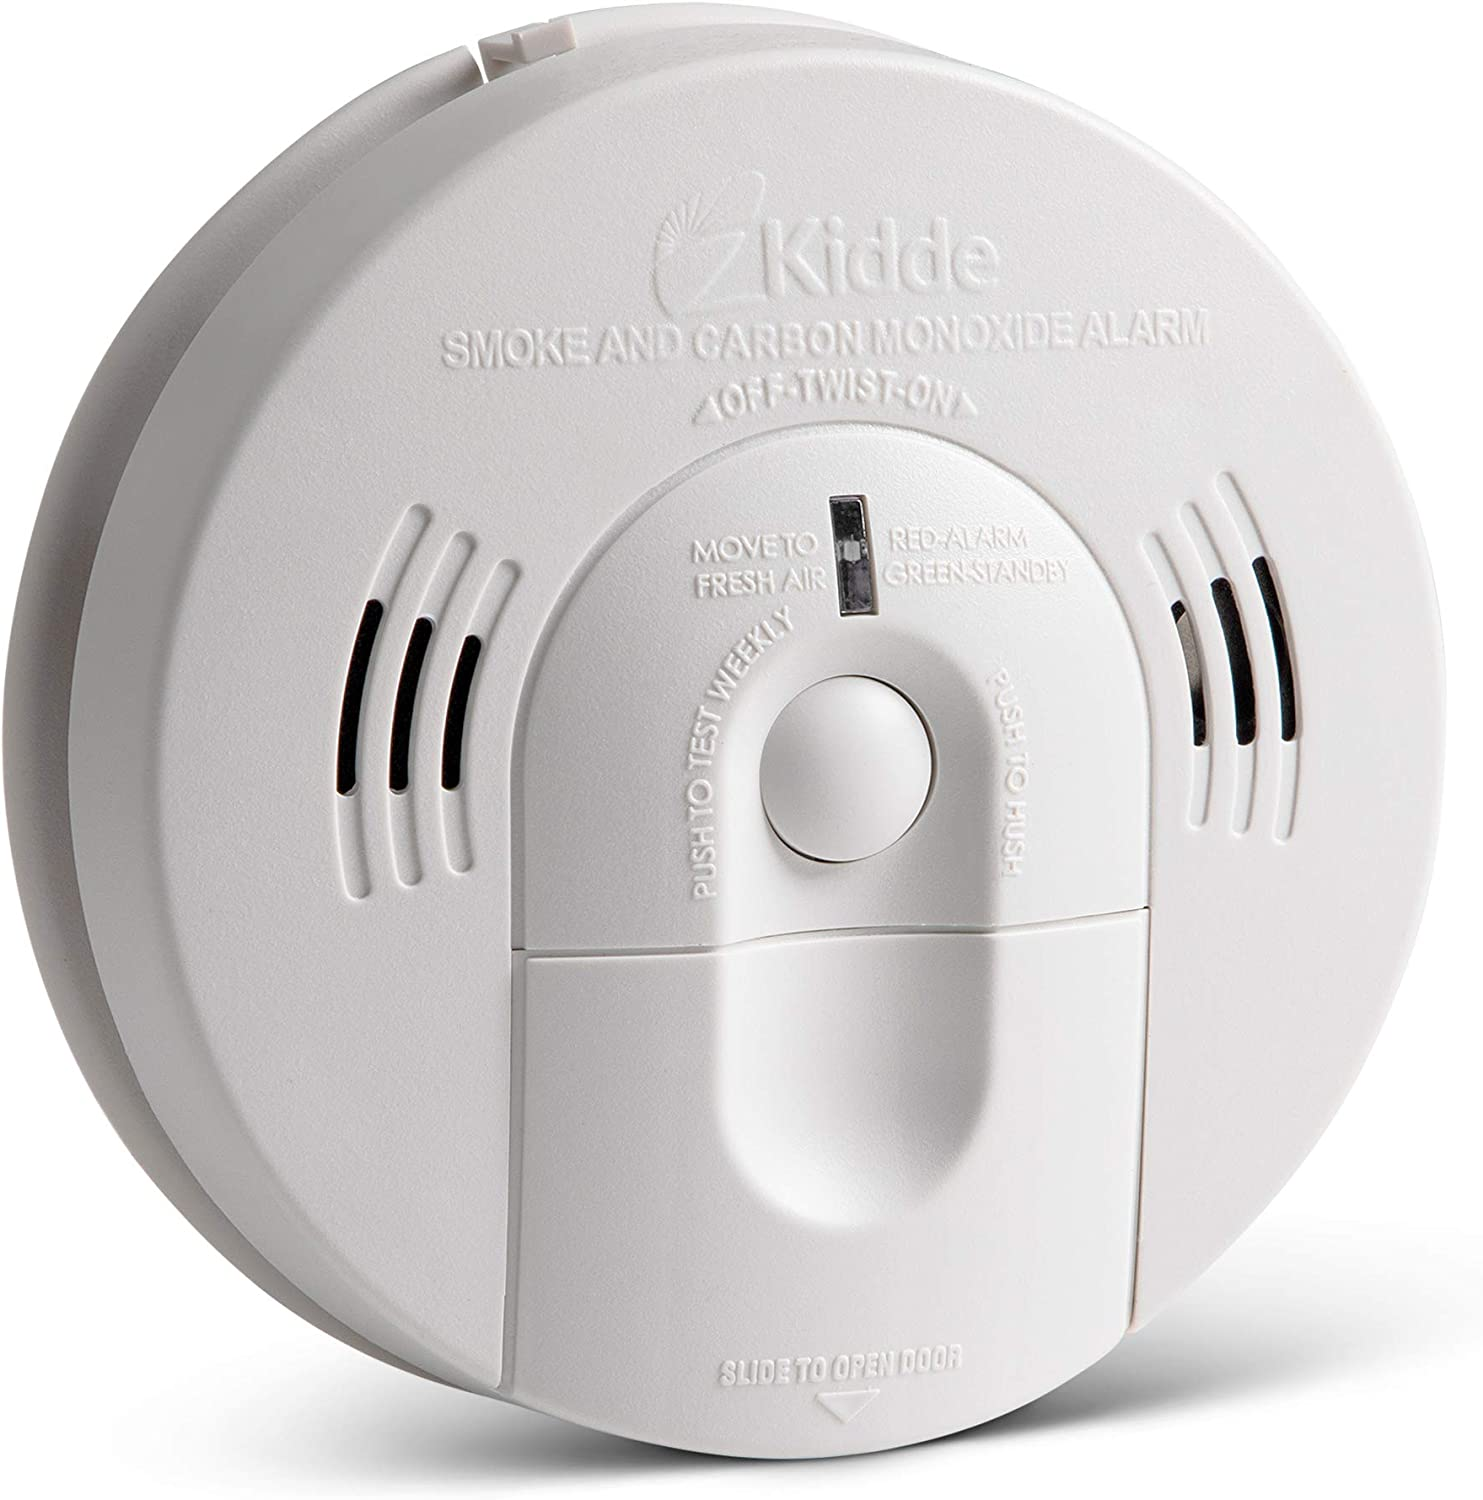 Kidde 21026043 Battery Operated Not Hardwired Combination Smoke Carbon Monoxide Alarm With Voice Warning Kn Cosm Ba Amazon Com